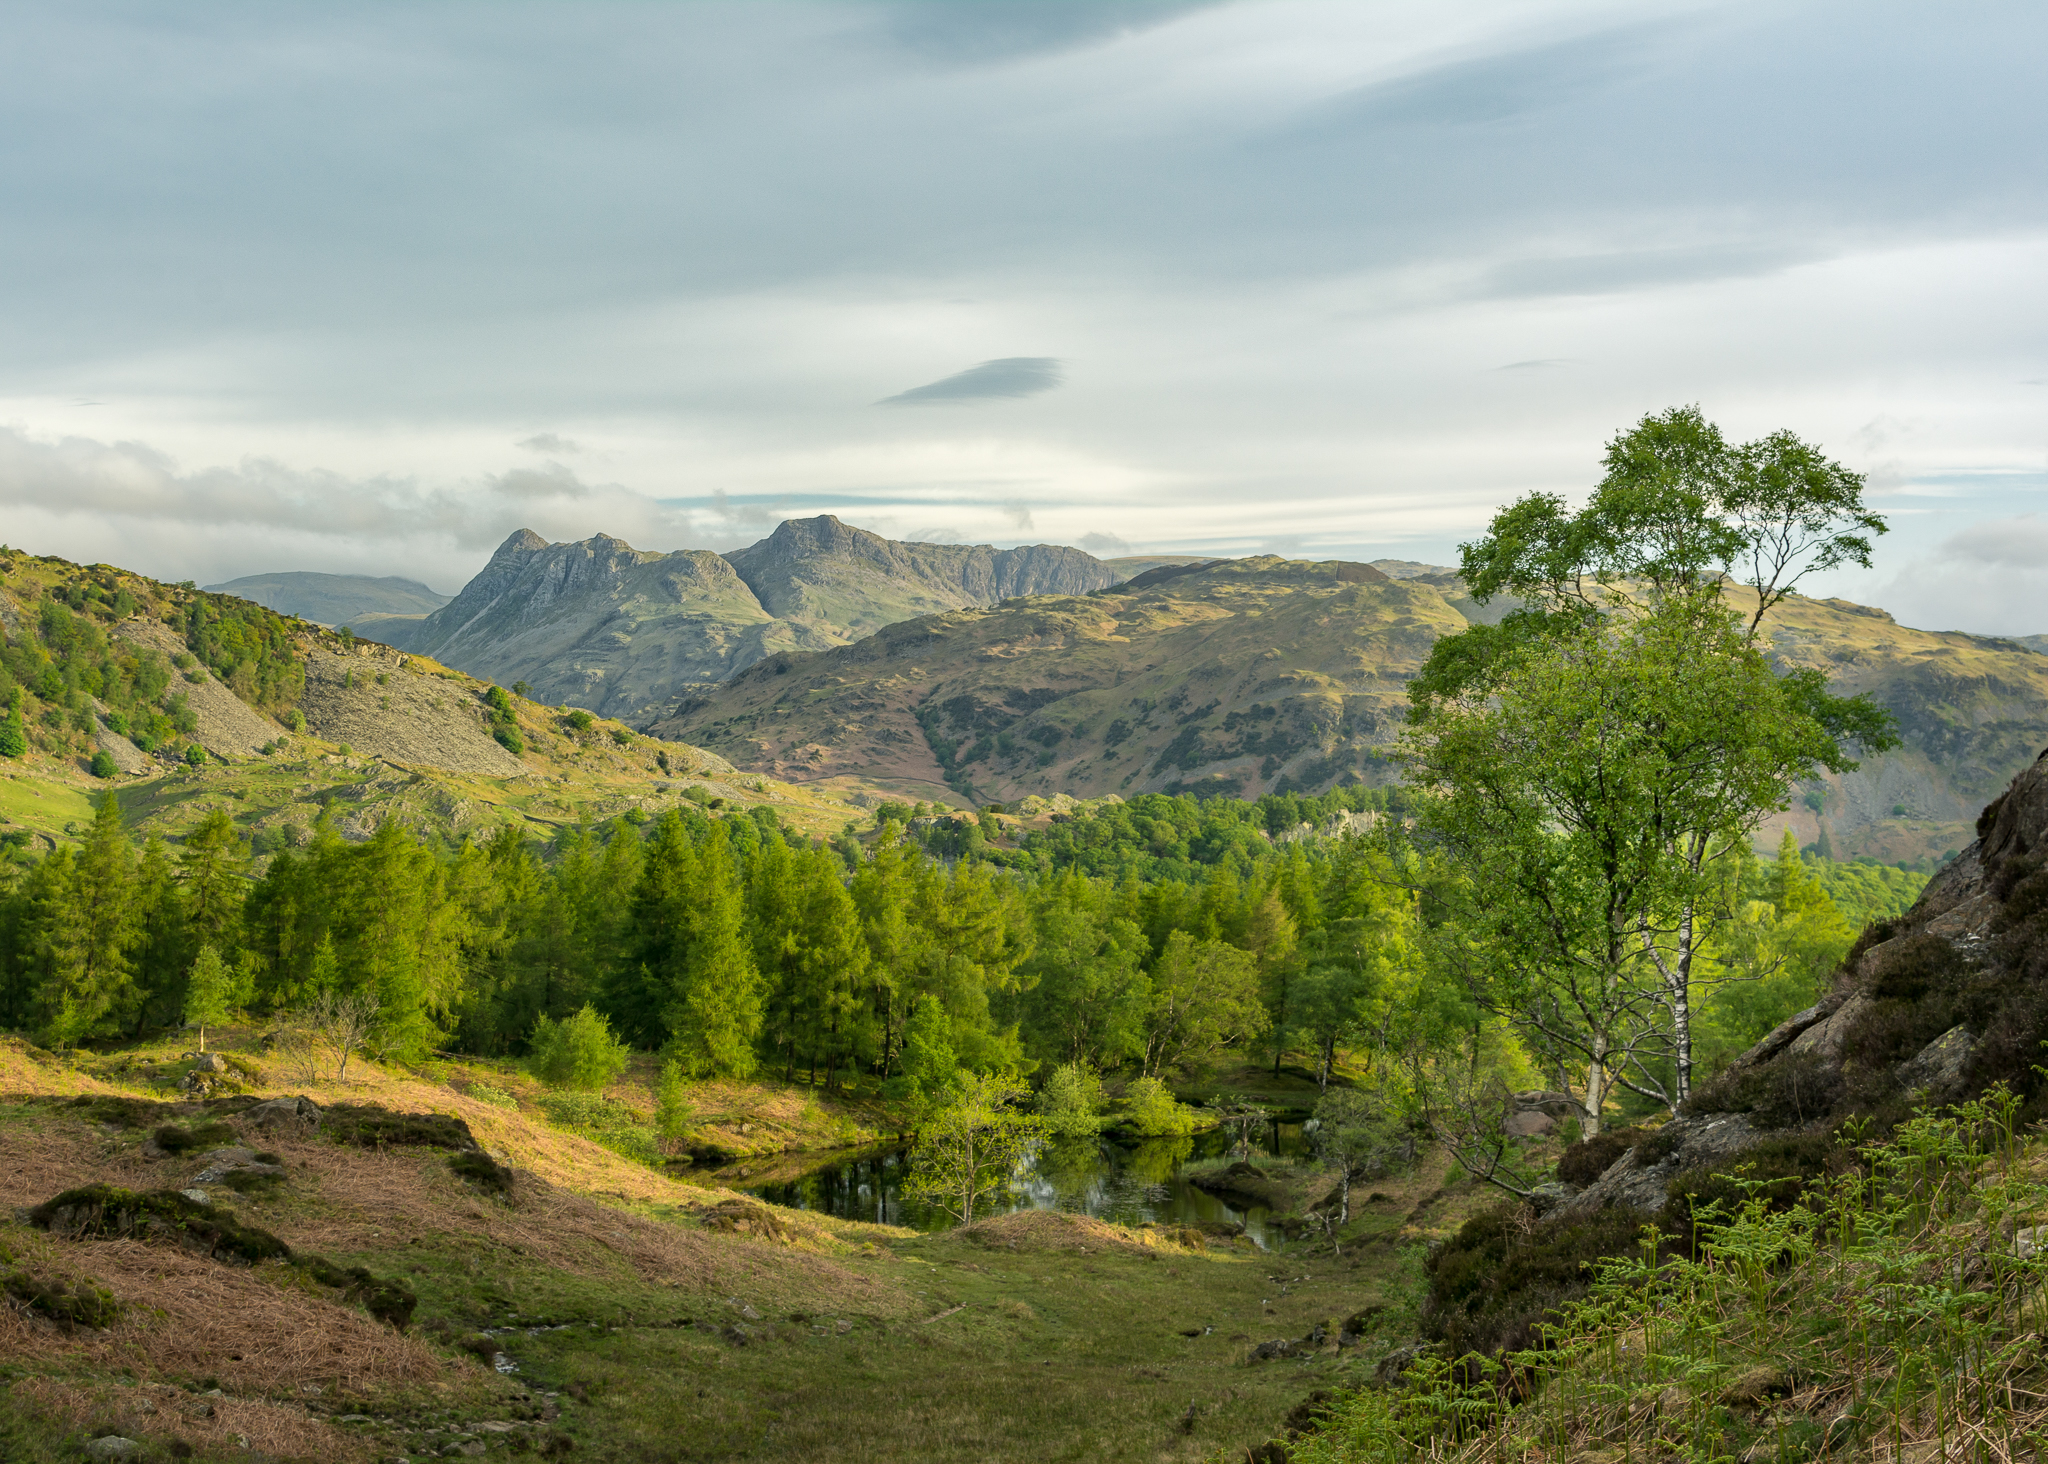 Landscape photography is certainly possible in the summer, but the shots are fewer and further between for me.